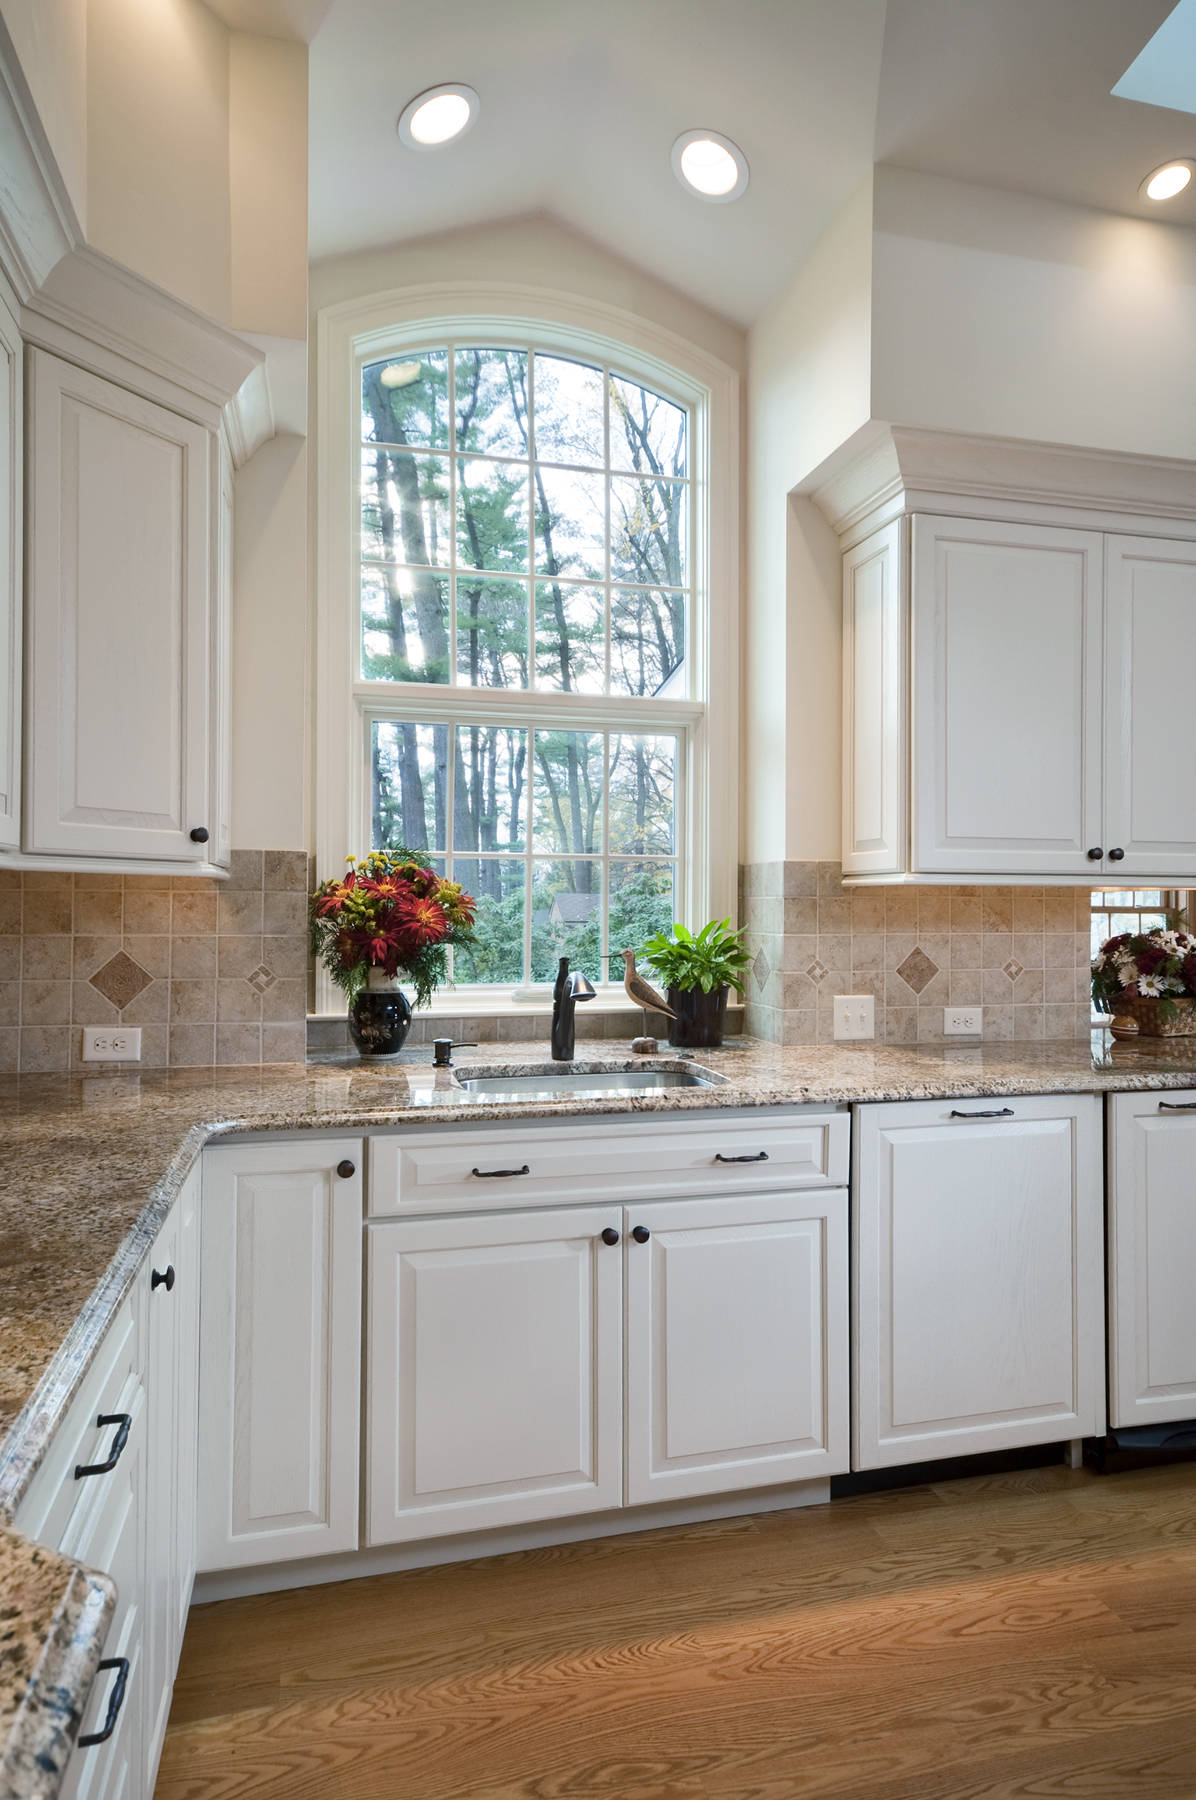 Kitchen sink window kitchen window inspiration my for House plans with kitchen sink window